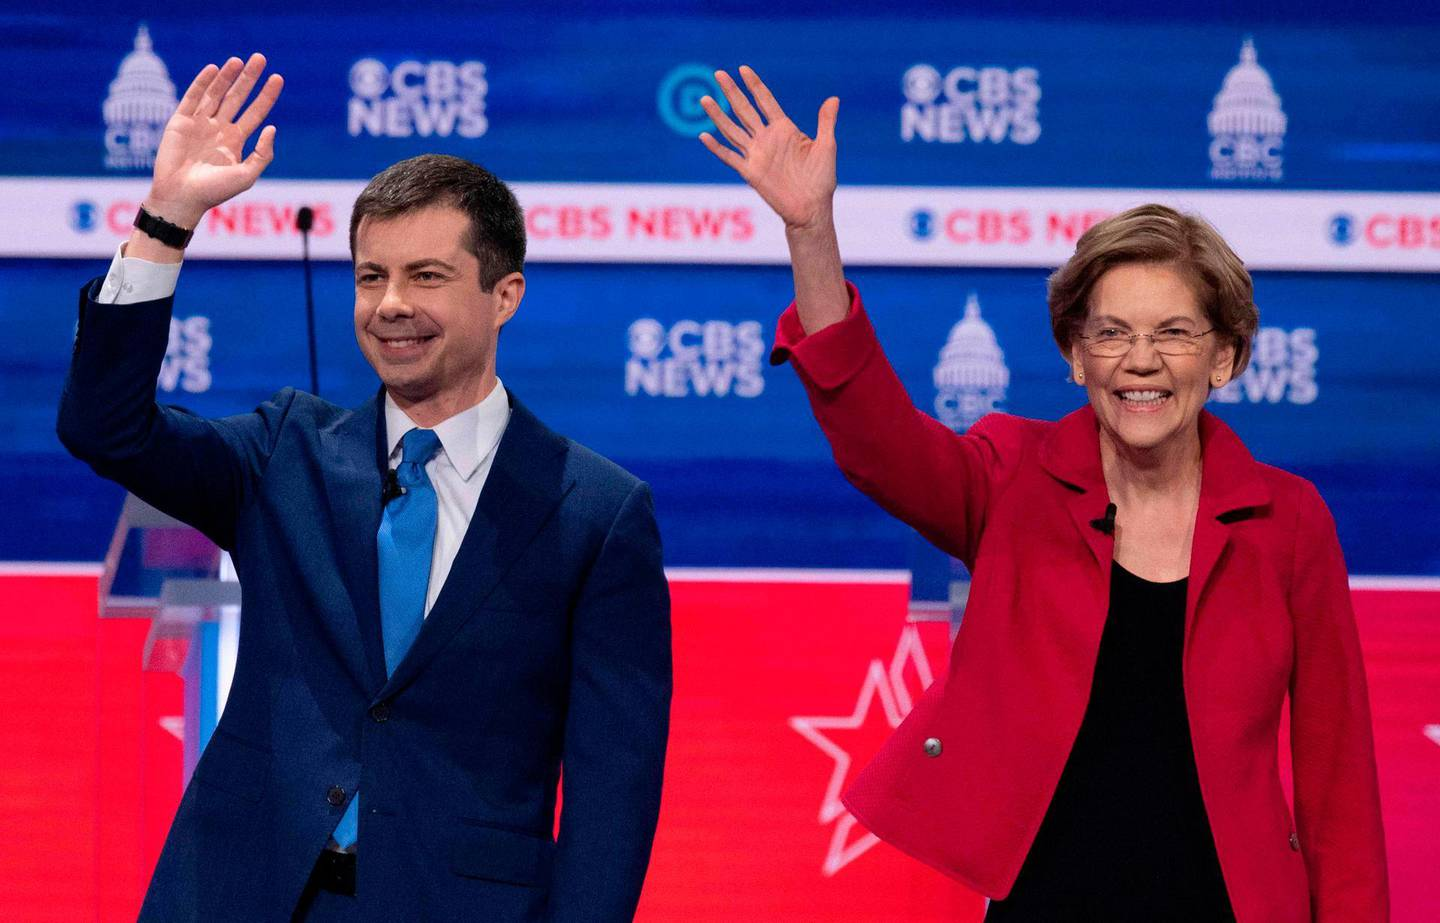 (FILES) In this file photo taken on February 25, 2020 former Democratic presidential hopefuls Former mayor of South Bend, Indiana, Pete Buttigieg and Massachusetts Senator Elizabeth Warren wave as they arrive on stage for the tenth Democratic primary debate of the 2020 presidential campaign season co-hosted by CBS News and the Congressional Black Caucus Institute at the Gaillard Center in Charleston, South Carolina. Elizabeth Warren, once a frontrunner in the Democratic contest for the White House, is dropping out of the race, US media reported Thursday, following a poor showing in several statewide votes this week. Warren, a 70-year-old progressive senator from Massachusetts, will hold a call with her campaign staff Thursday and announce that she is suspending her bid for the party's presidential nomination, a source familiar with the plans told CNN.  / AFP / JIM WATSON